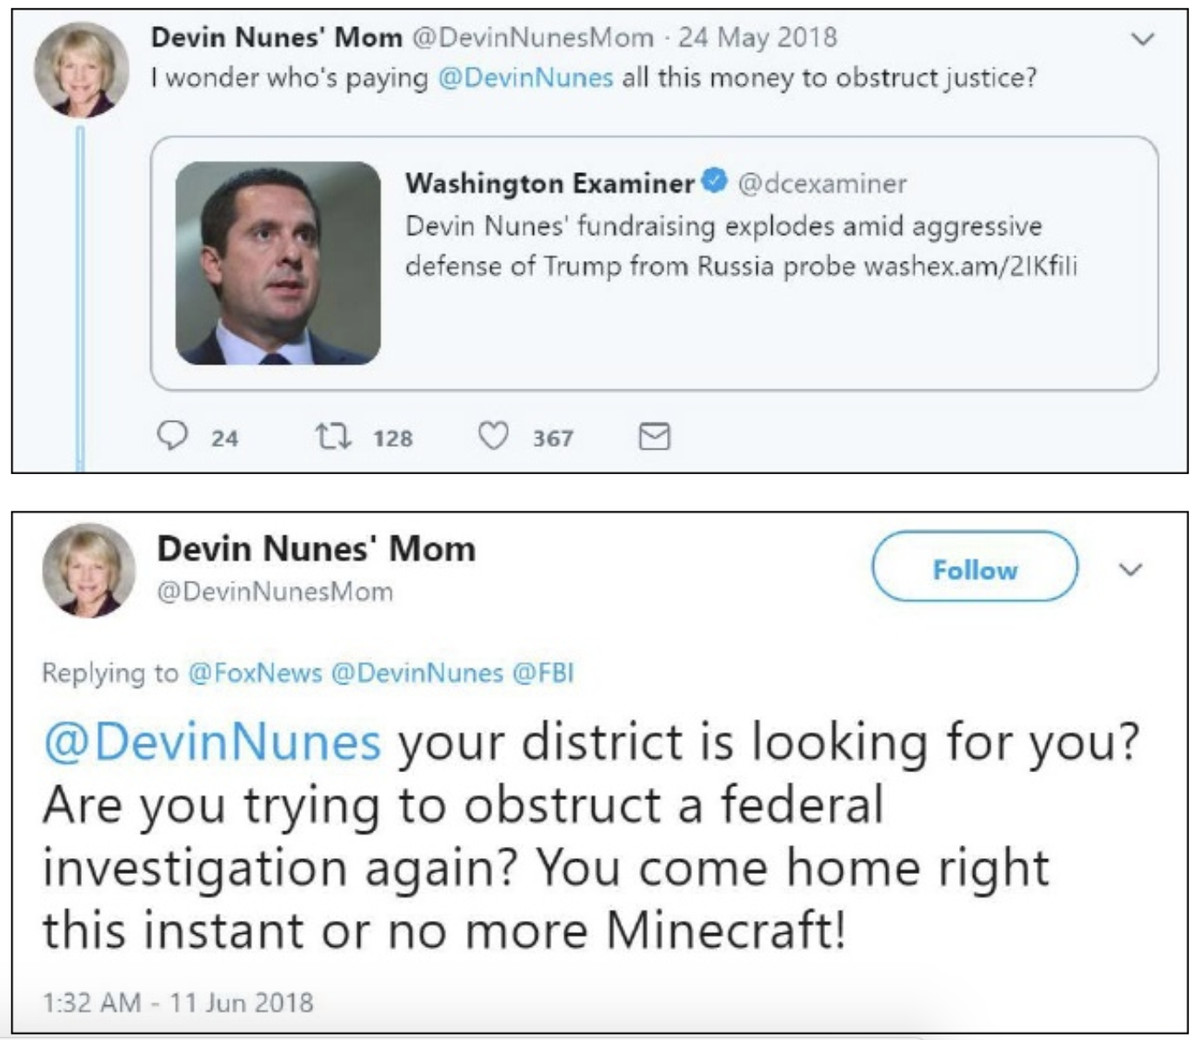 Devin Nunes' Mom lawsuit tweets